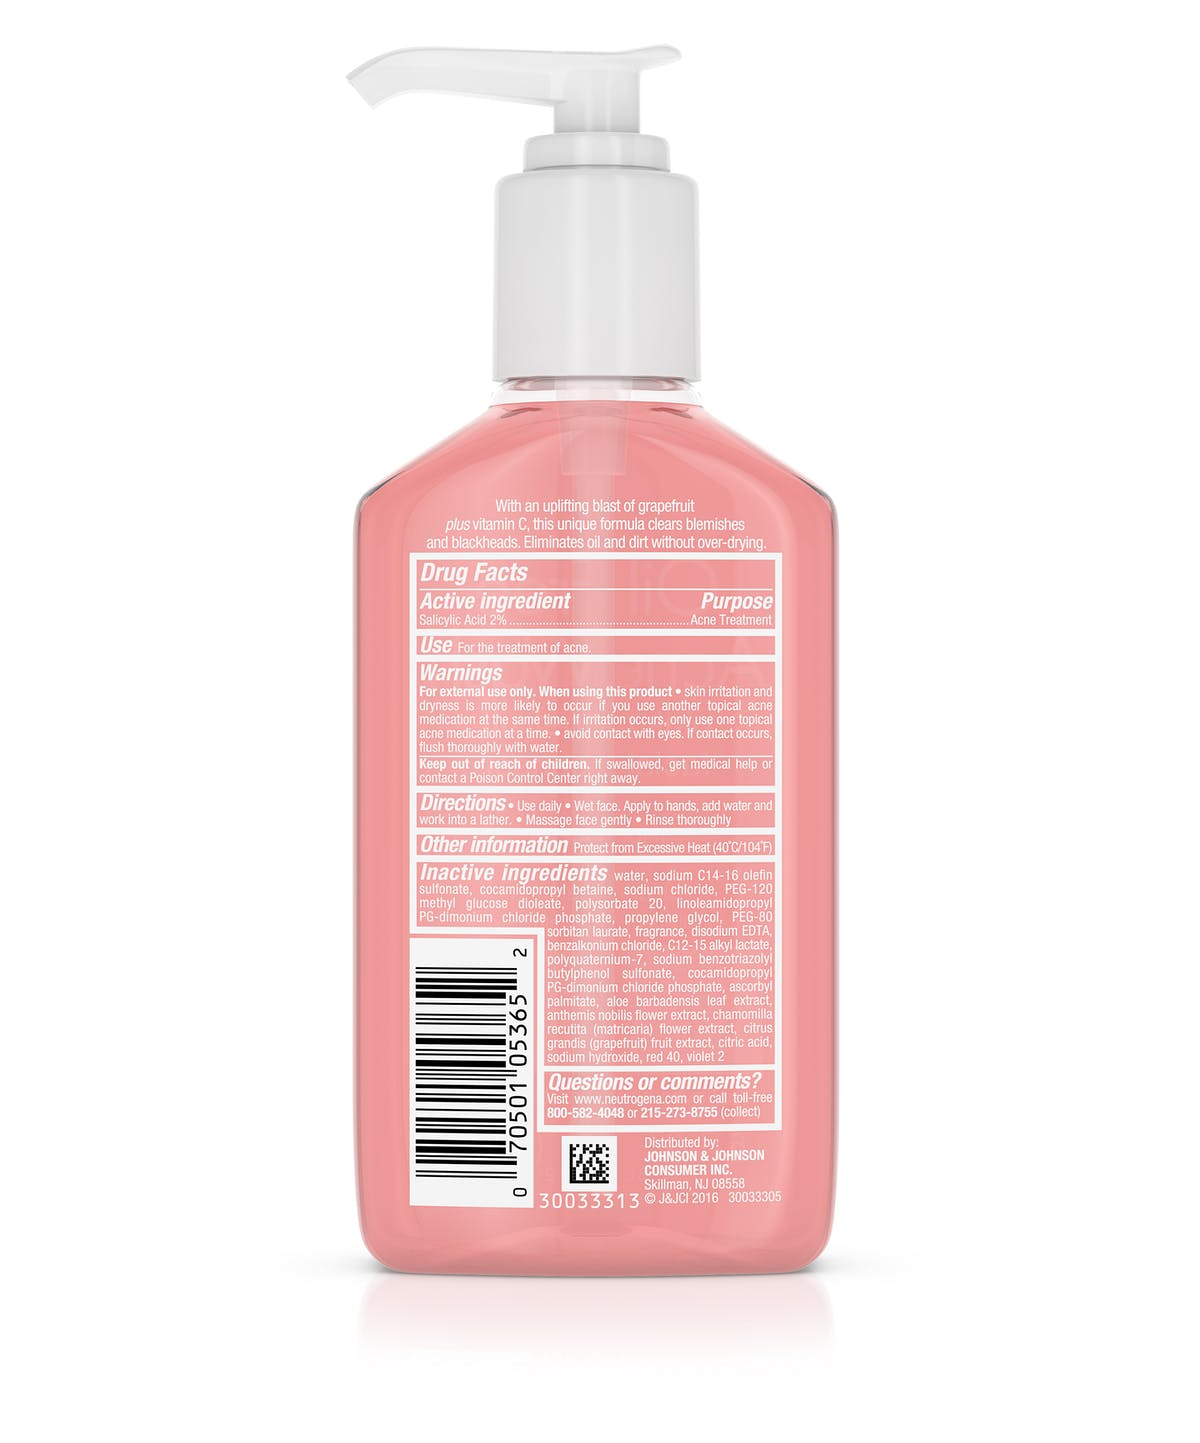 1db28ccfd49 Oil-Free Acne Wash Pink Grapefruit Facial Cleanser